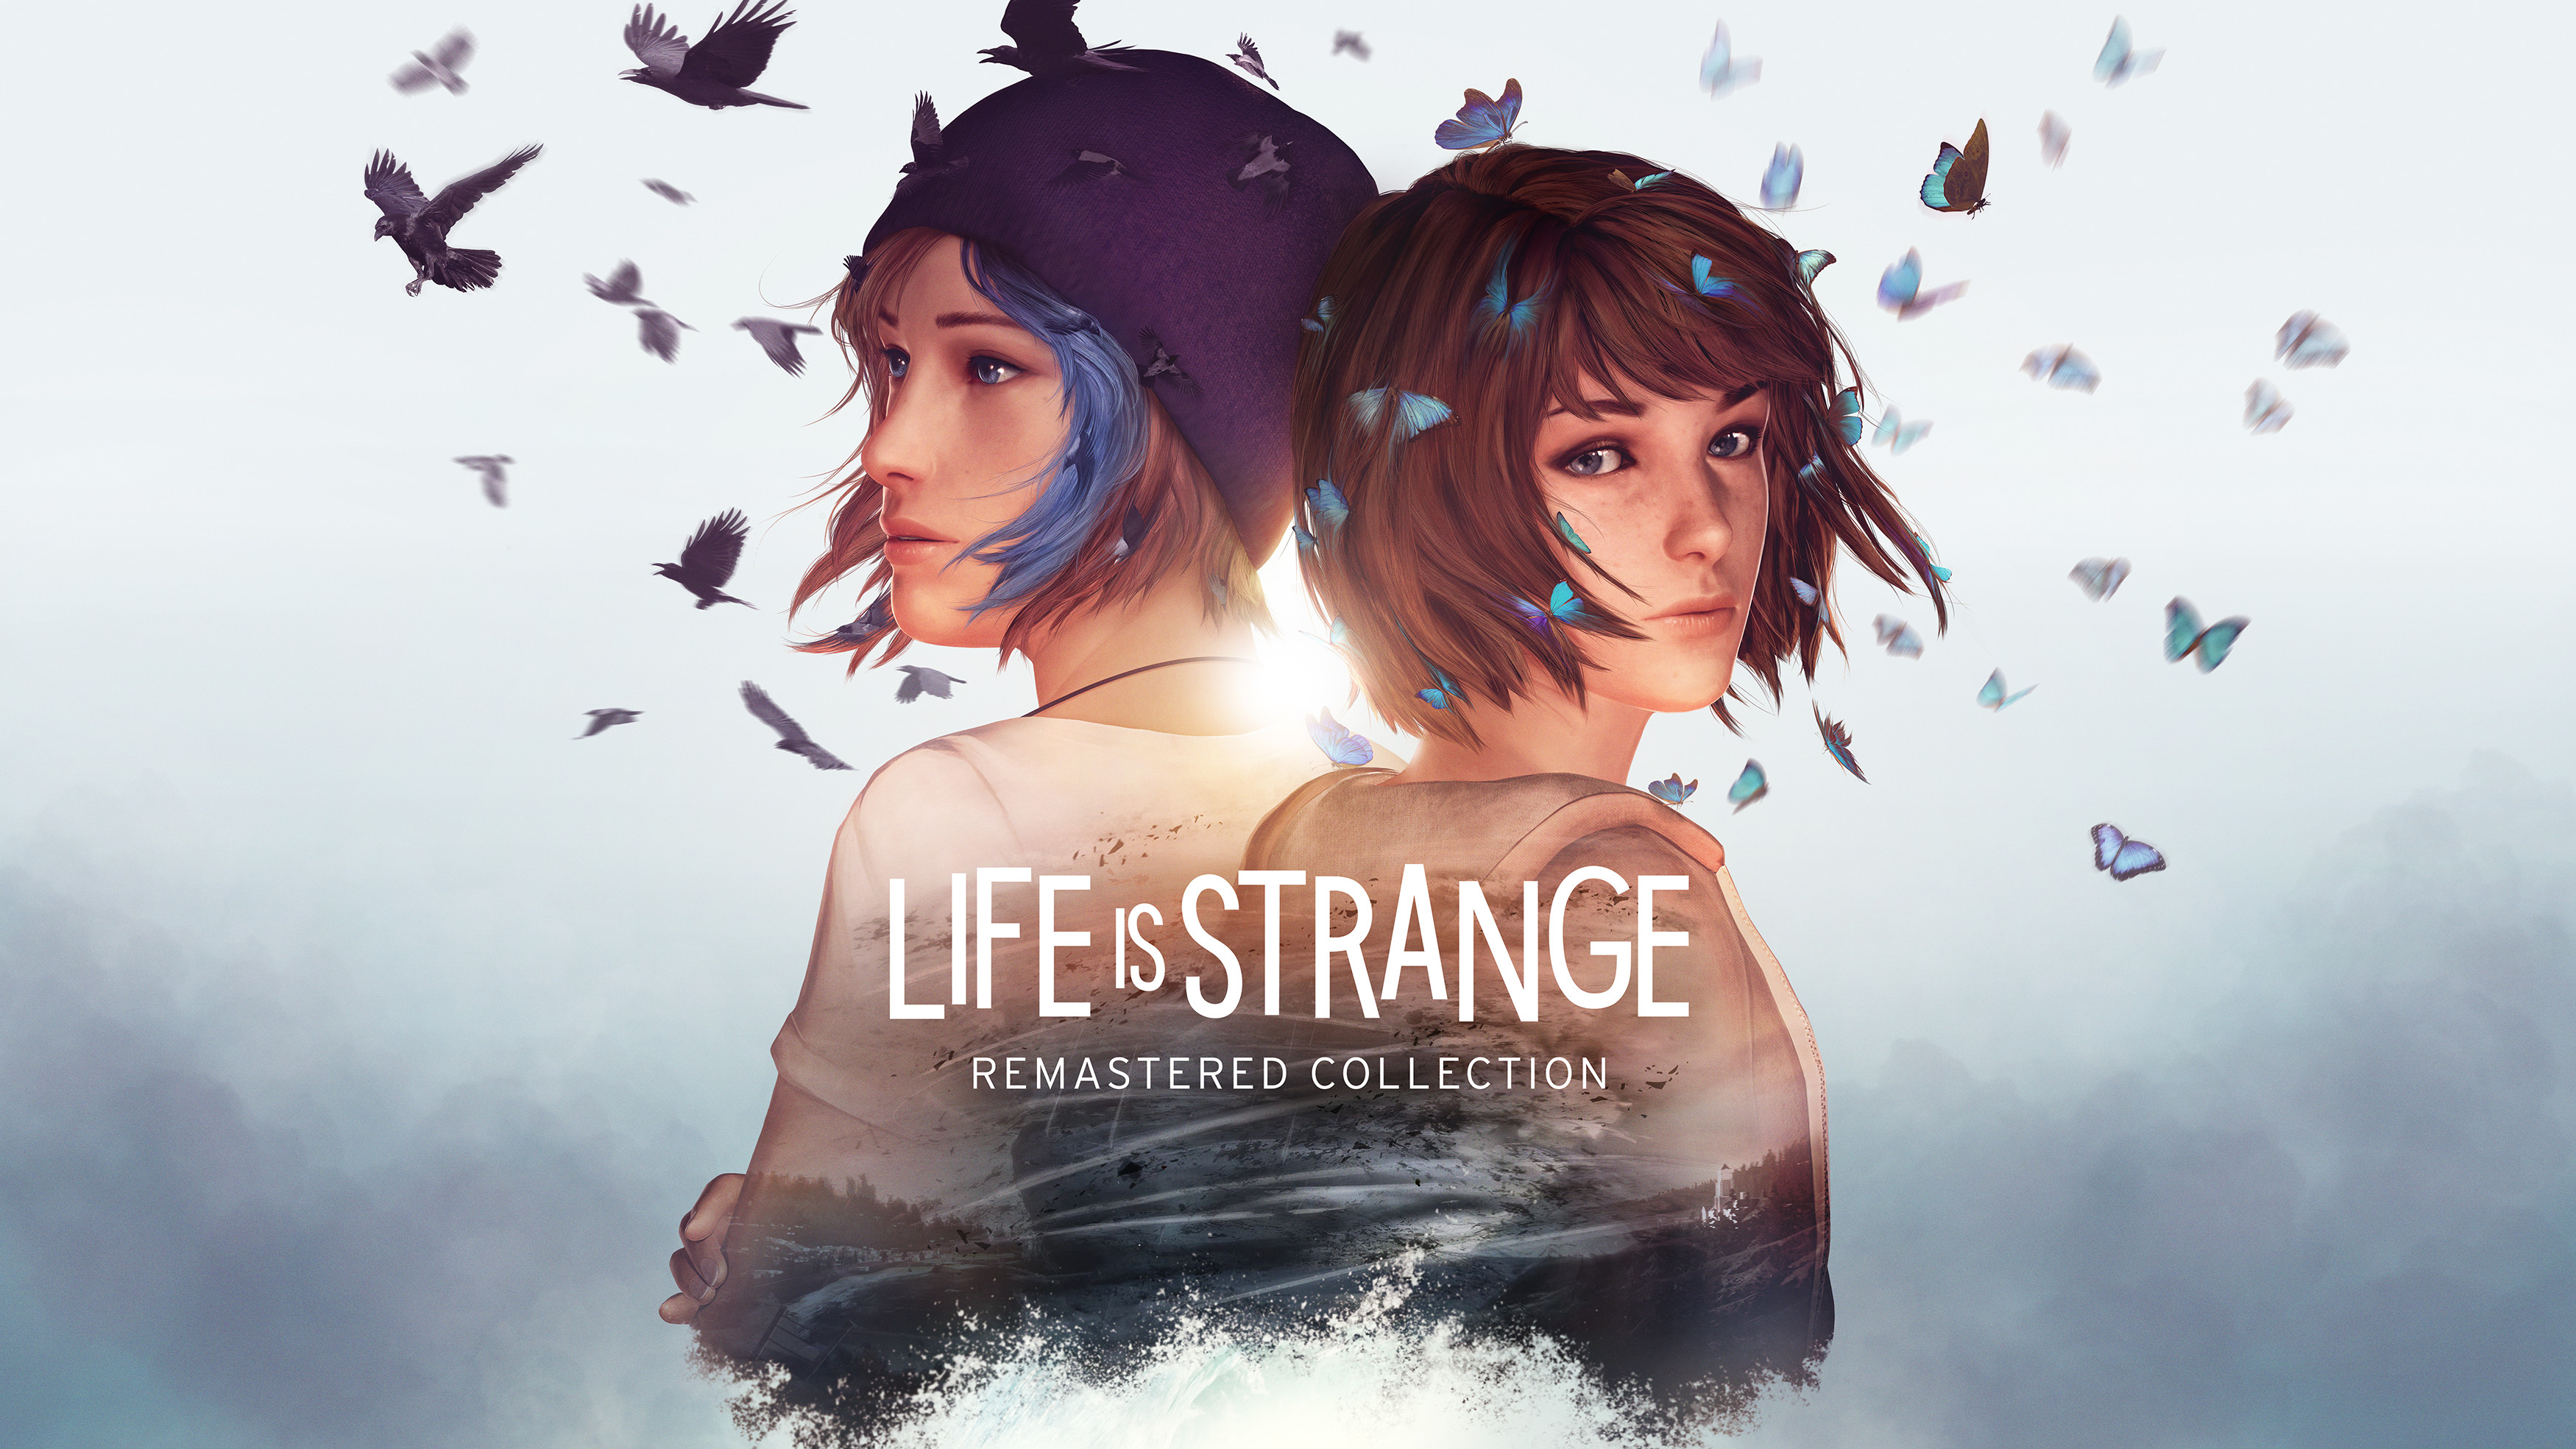 Life Is Strange: Remastered Collection coming later this year